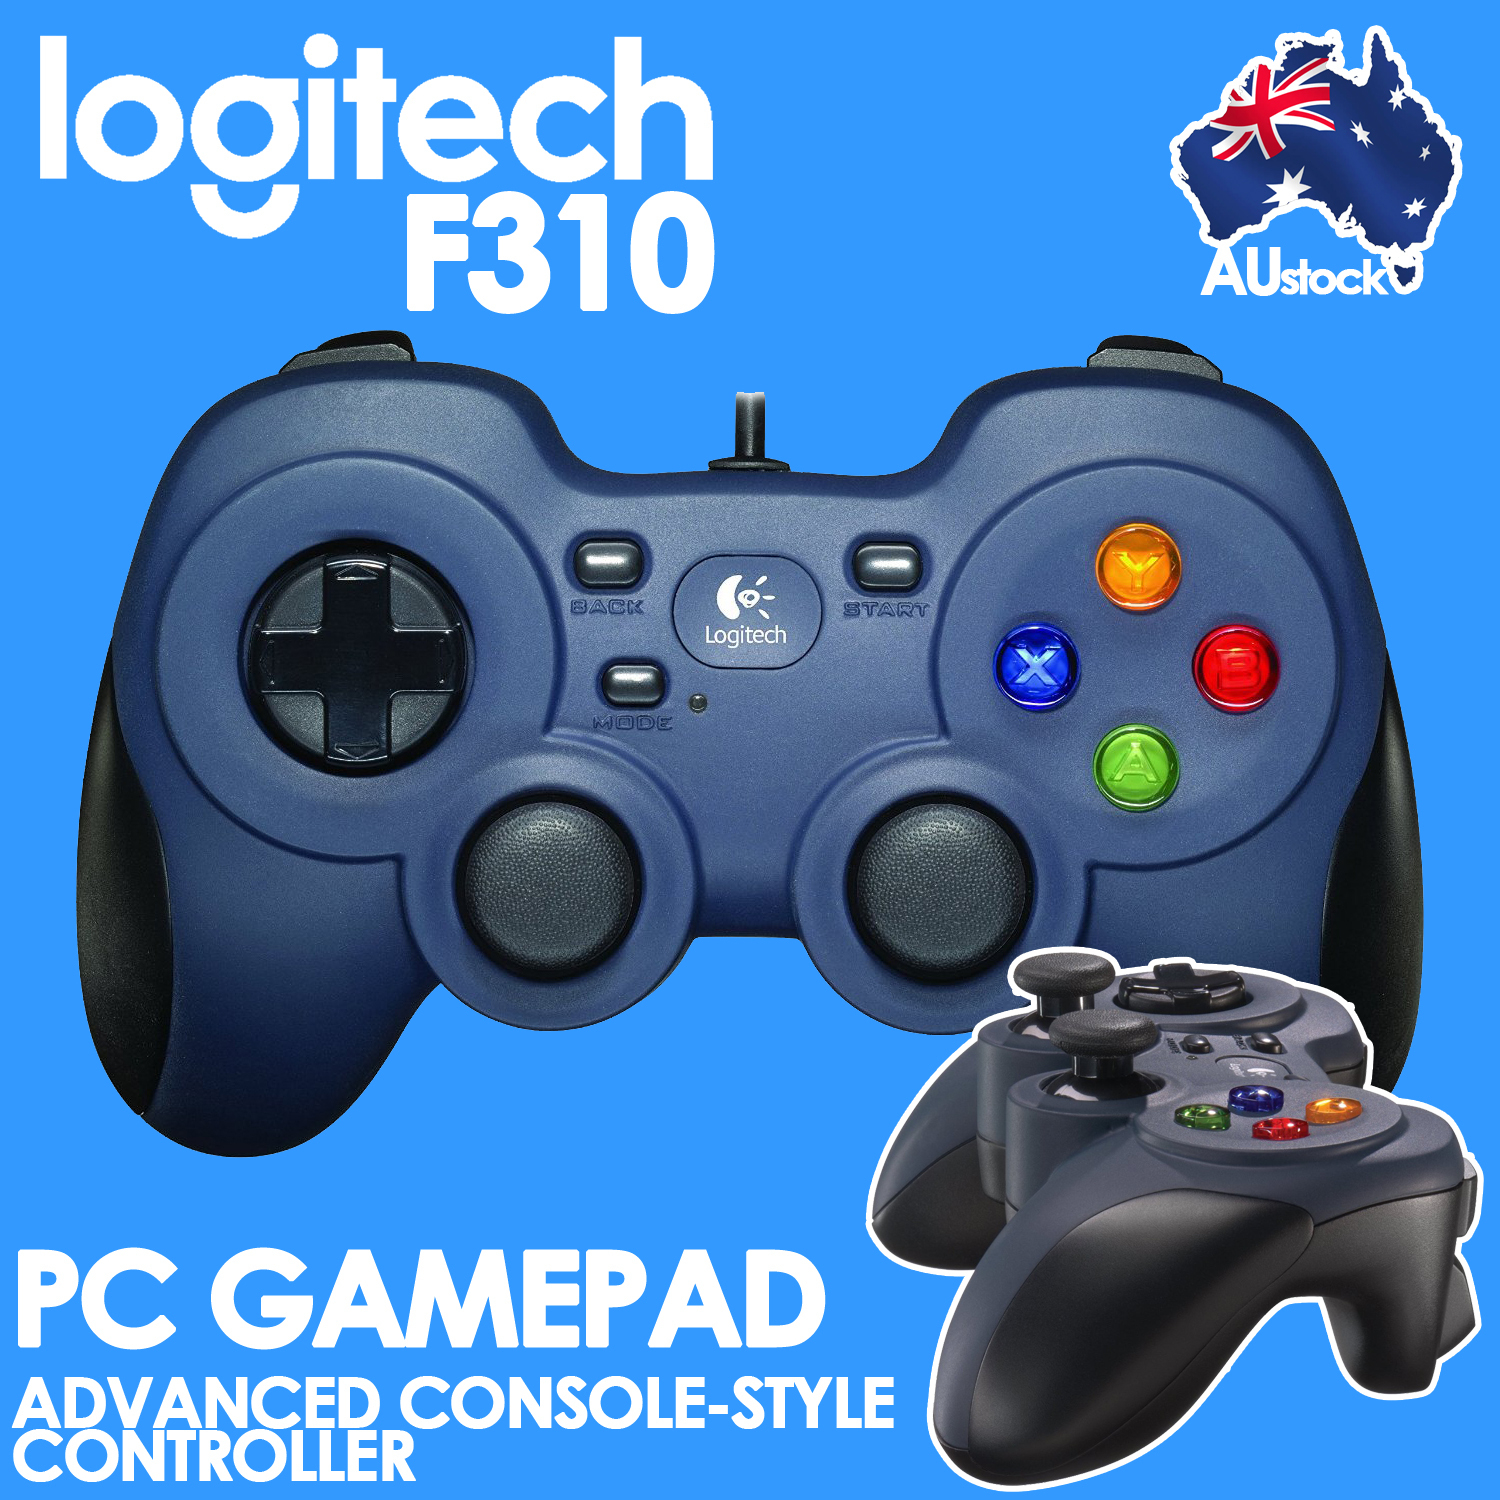 Logitech F310 Usb Gamepad Comfortable Wired Gaming Controller Pc - Logitech Controller F310 Usb Wiring Diagram